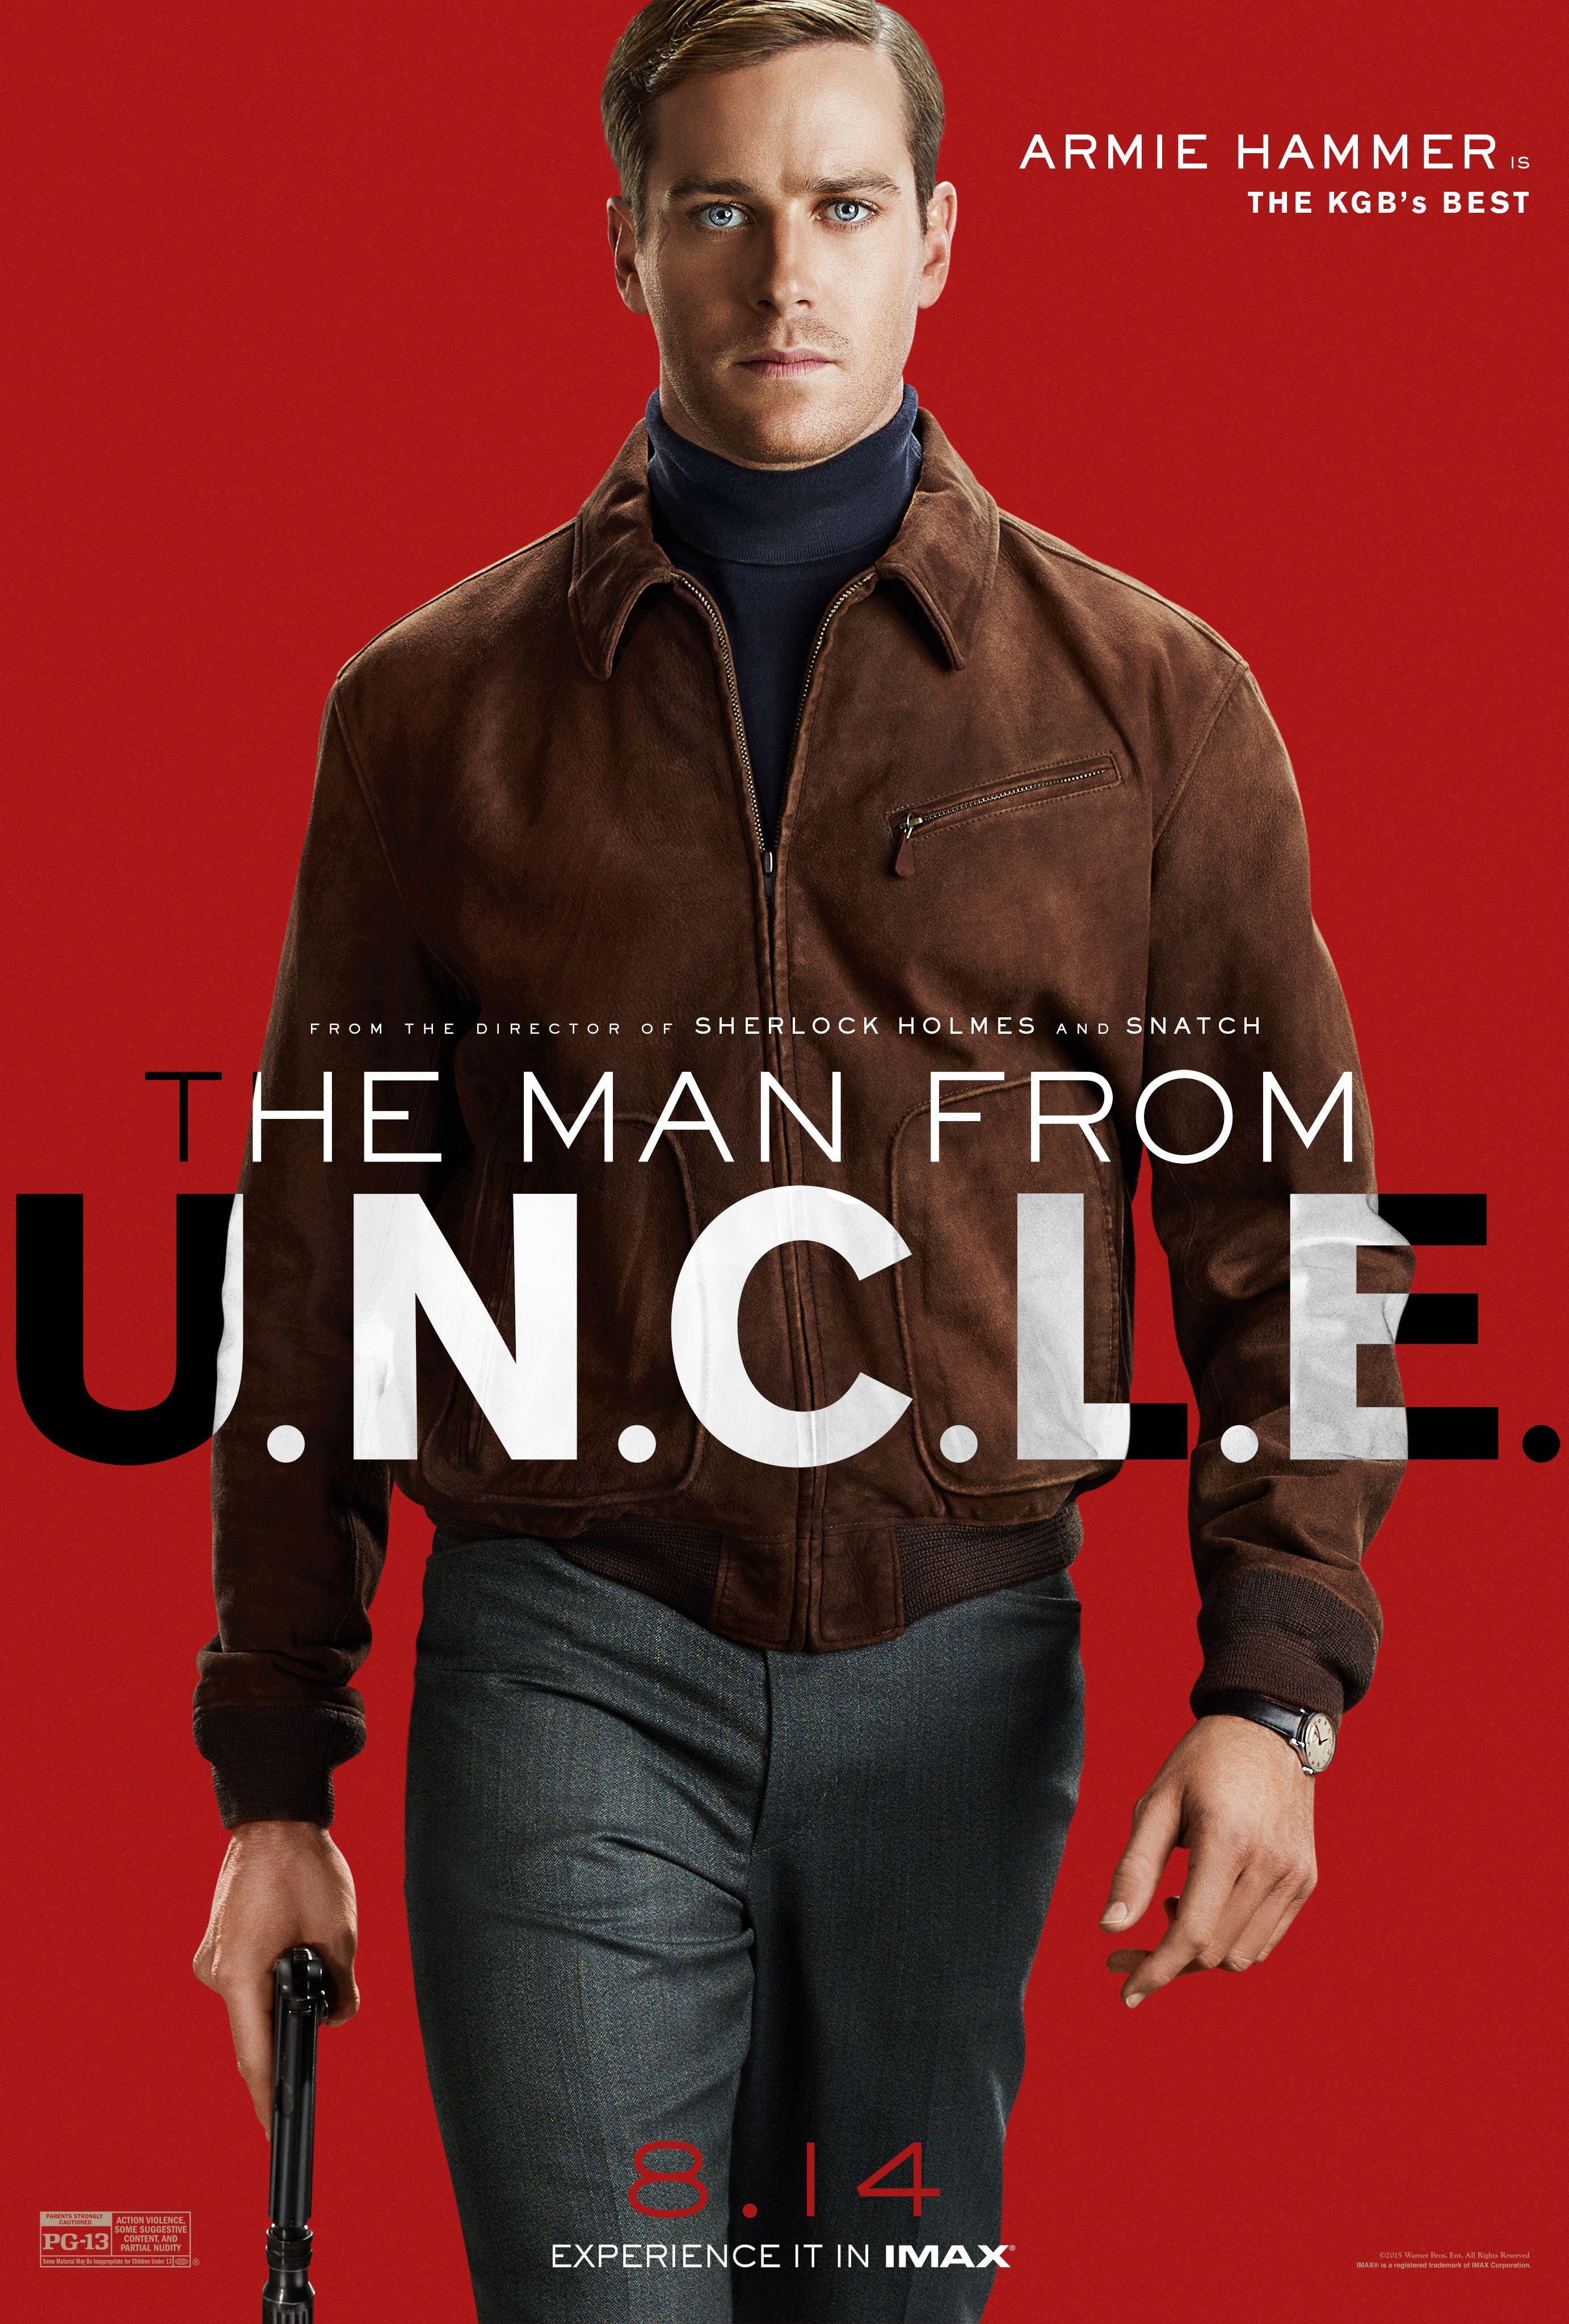 Having The Letterforms Content Or Appearance Change Around The Will Of The Subject Matter In This Poster Re The Man From Uncle Uncle Movie Man From Uncle Movie